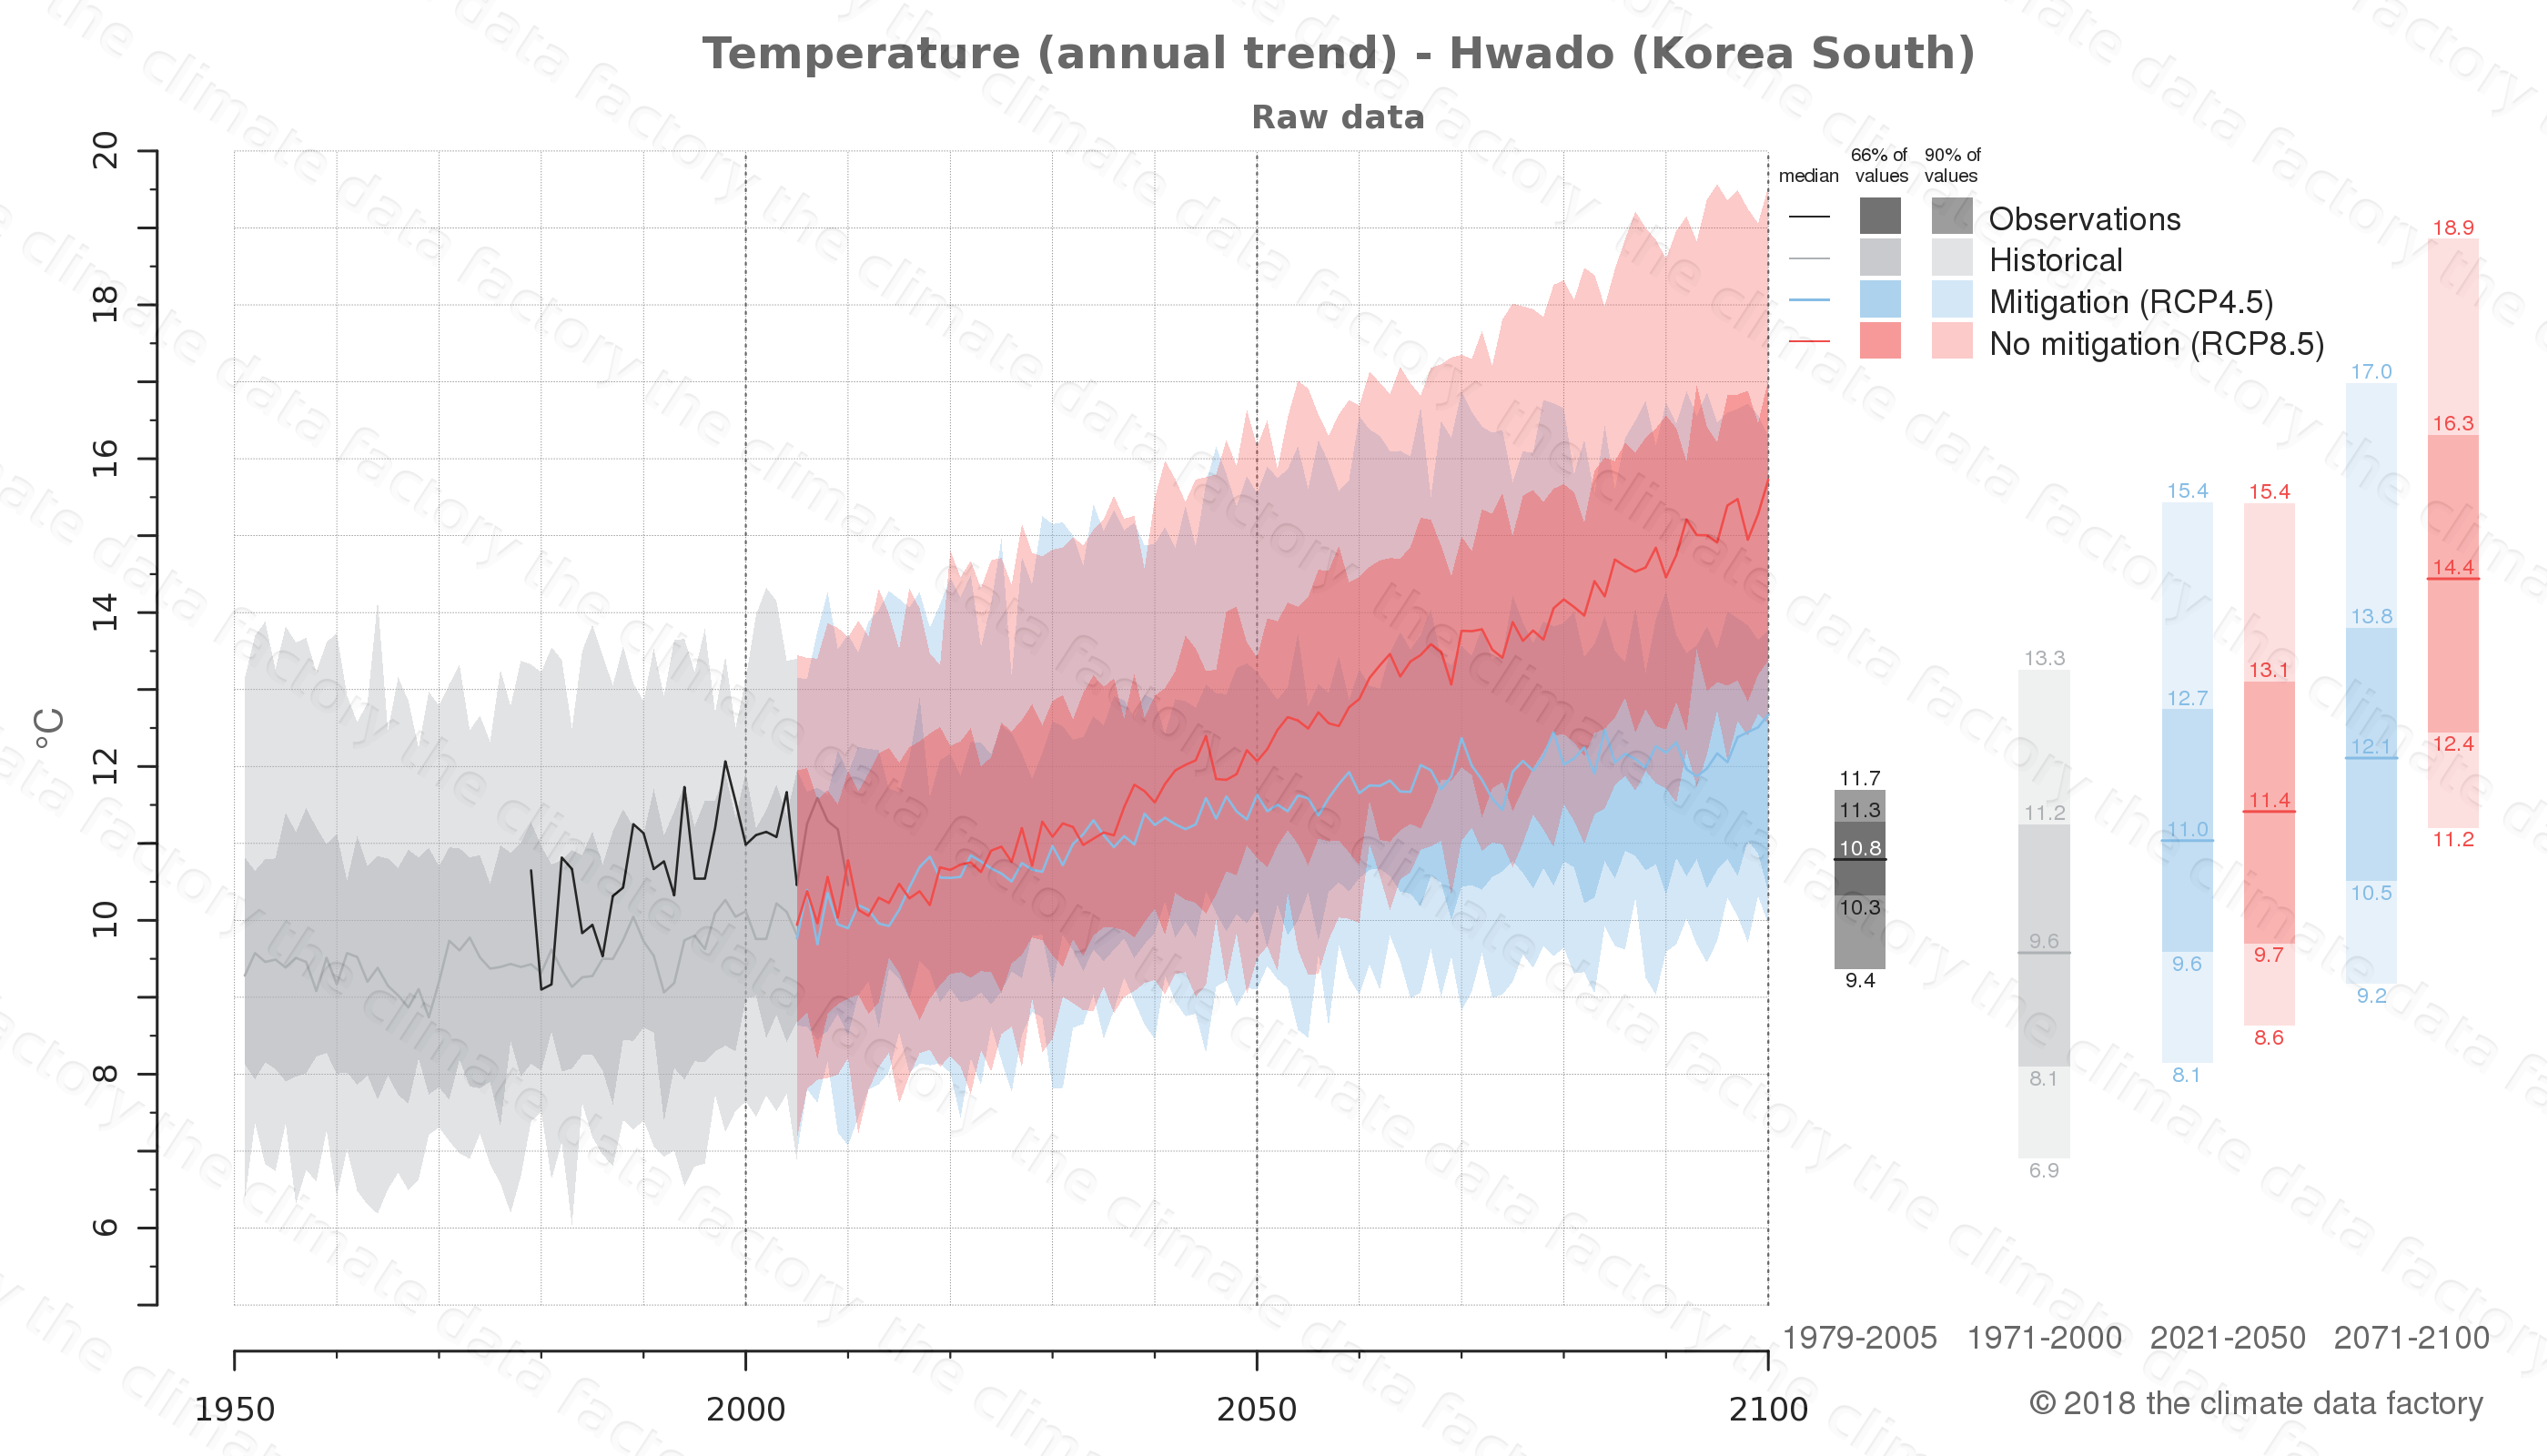 climate change data policy adaptation climate graph city data temperature hwado south korea